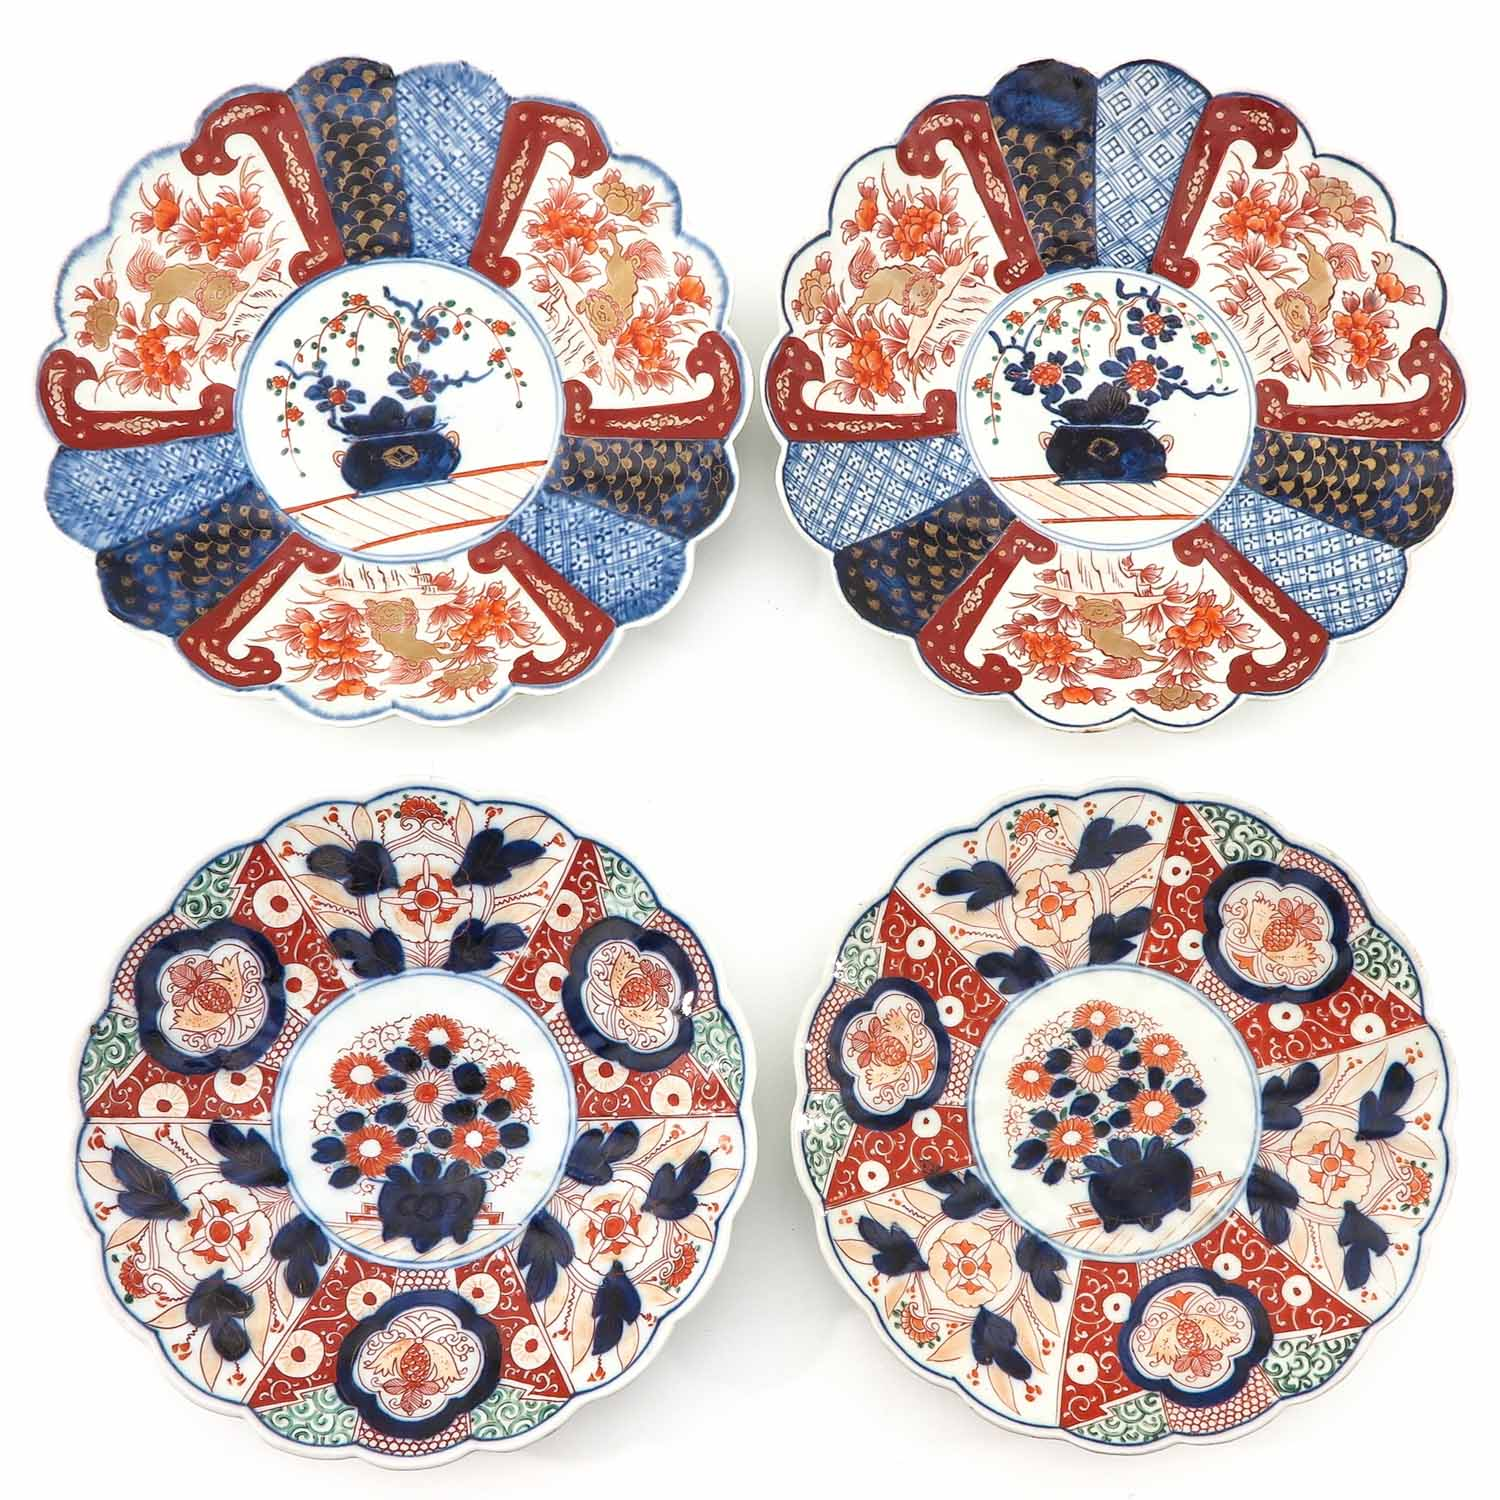 A Collection of 4 Imari Plates